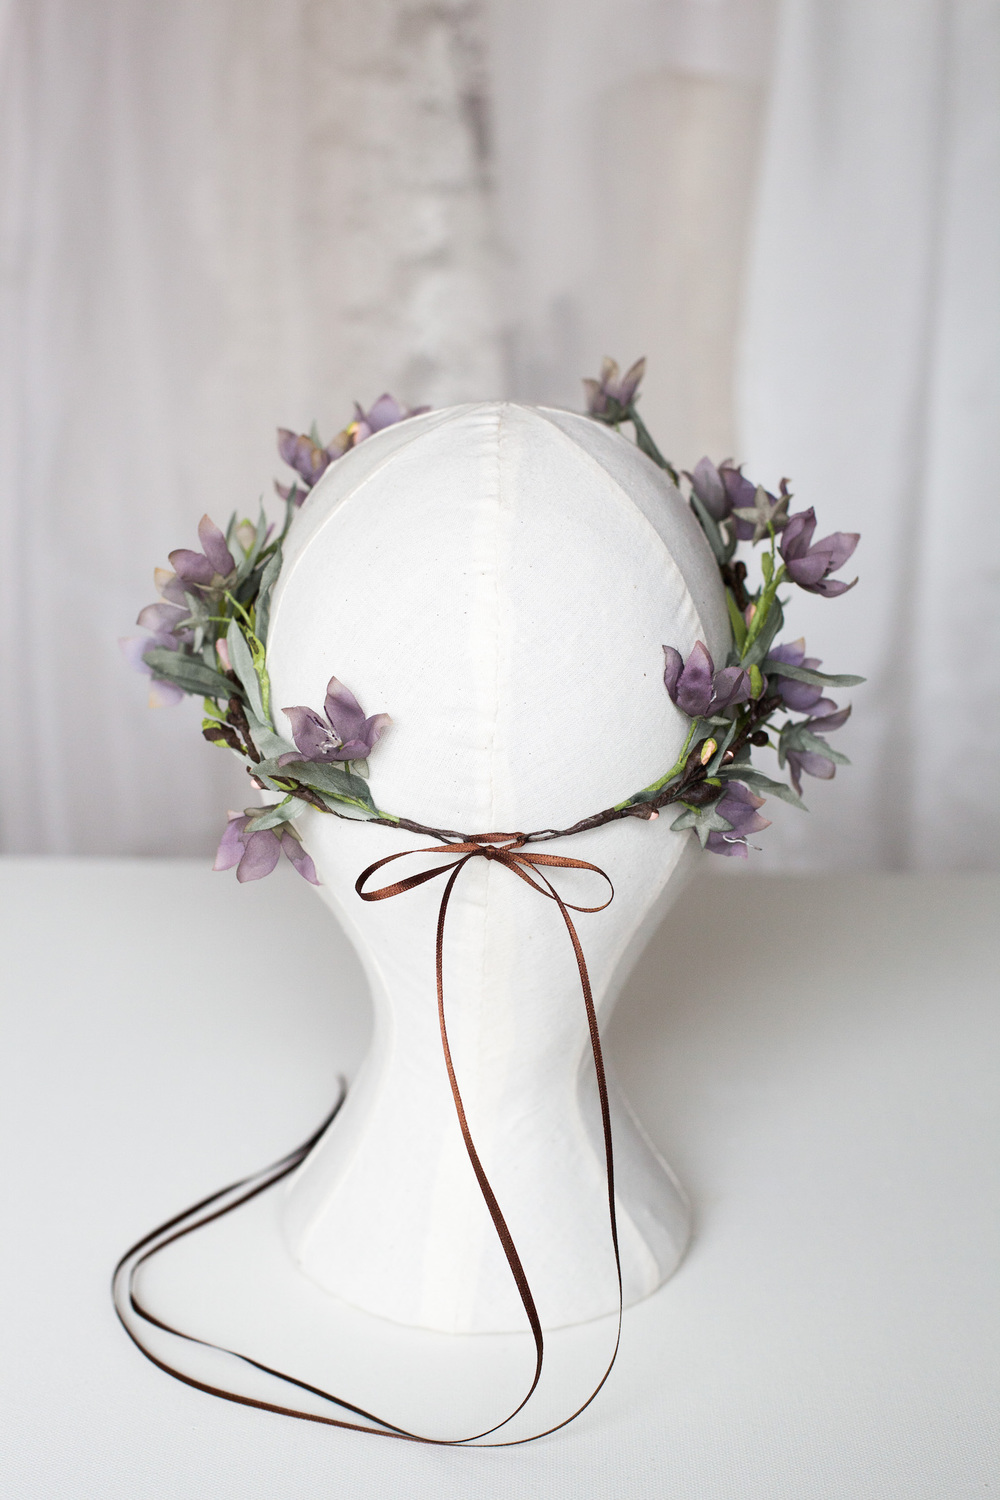 purple-wildflower-crown-handmade-woodland-wedding-couture-headpiece